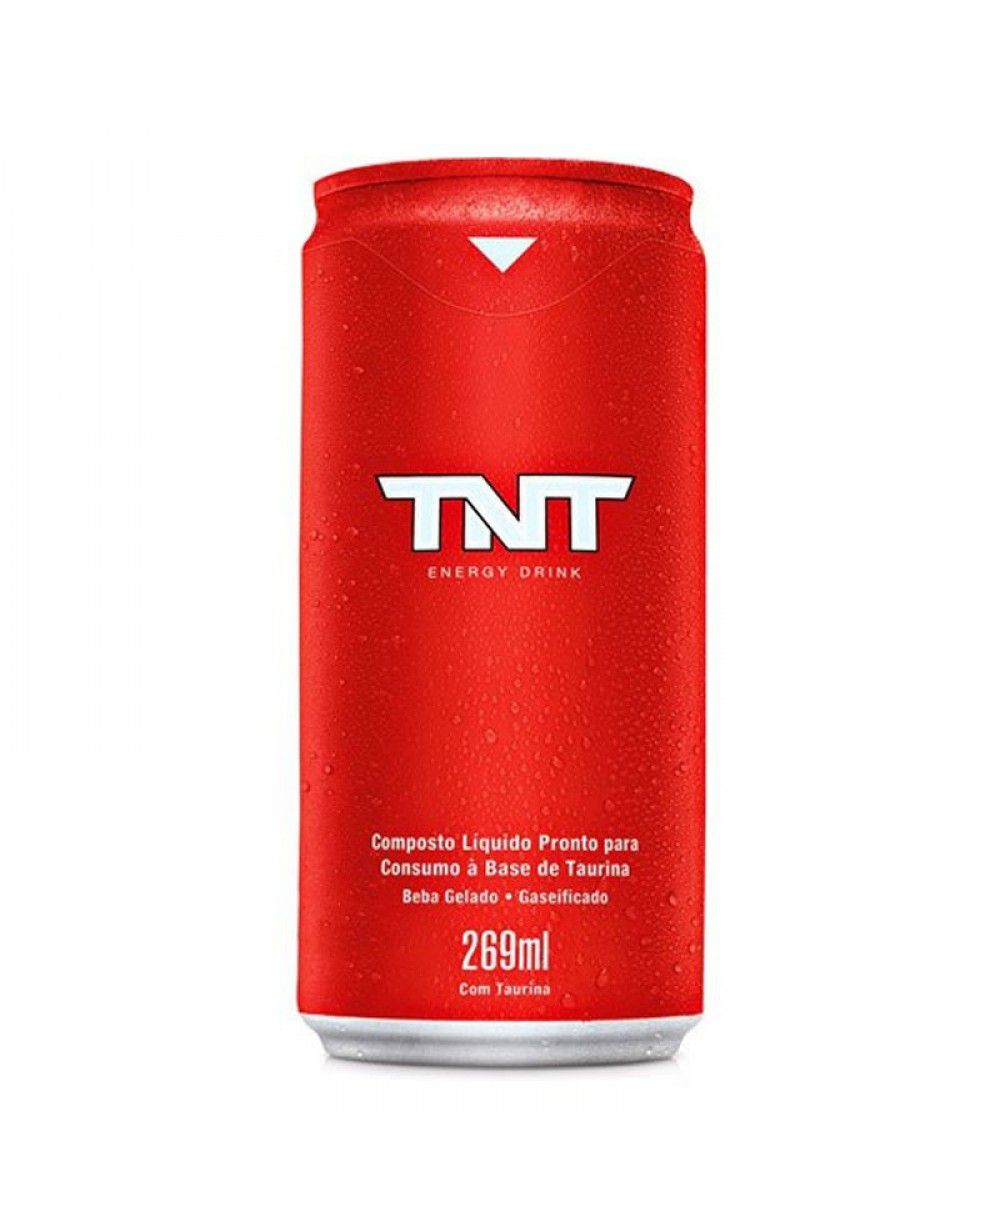 ENERGY DRINK TNT RED LATA 269ML